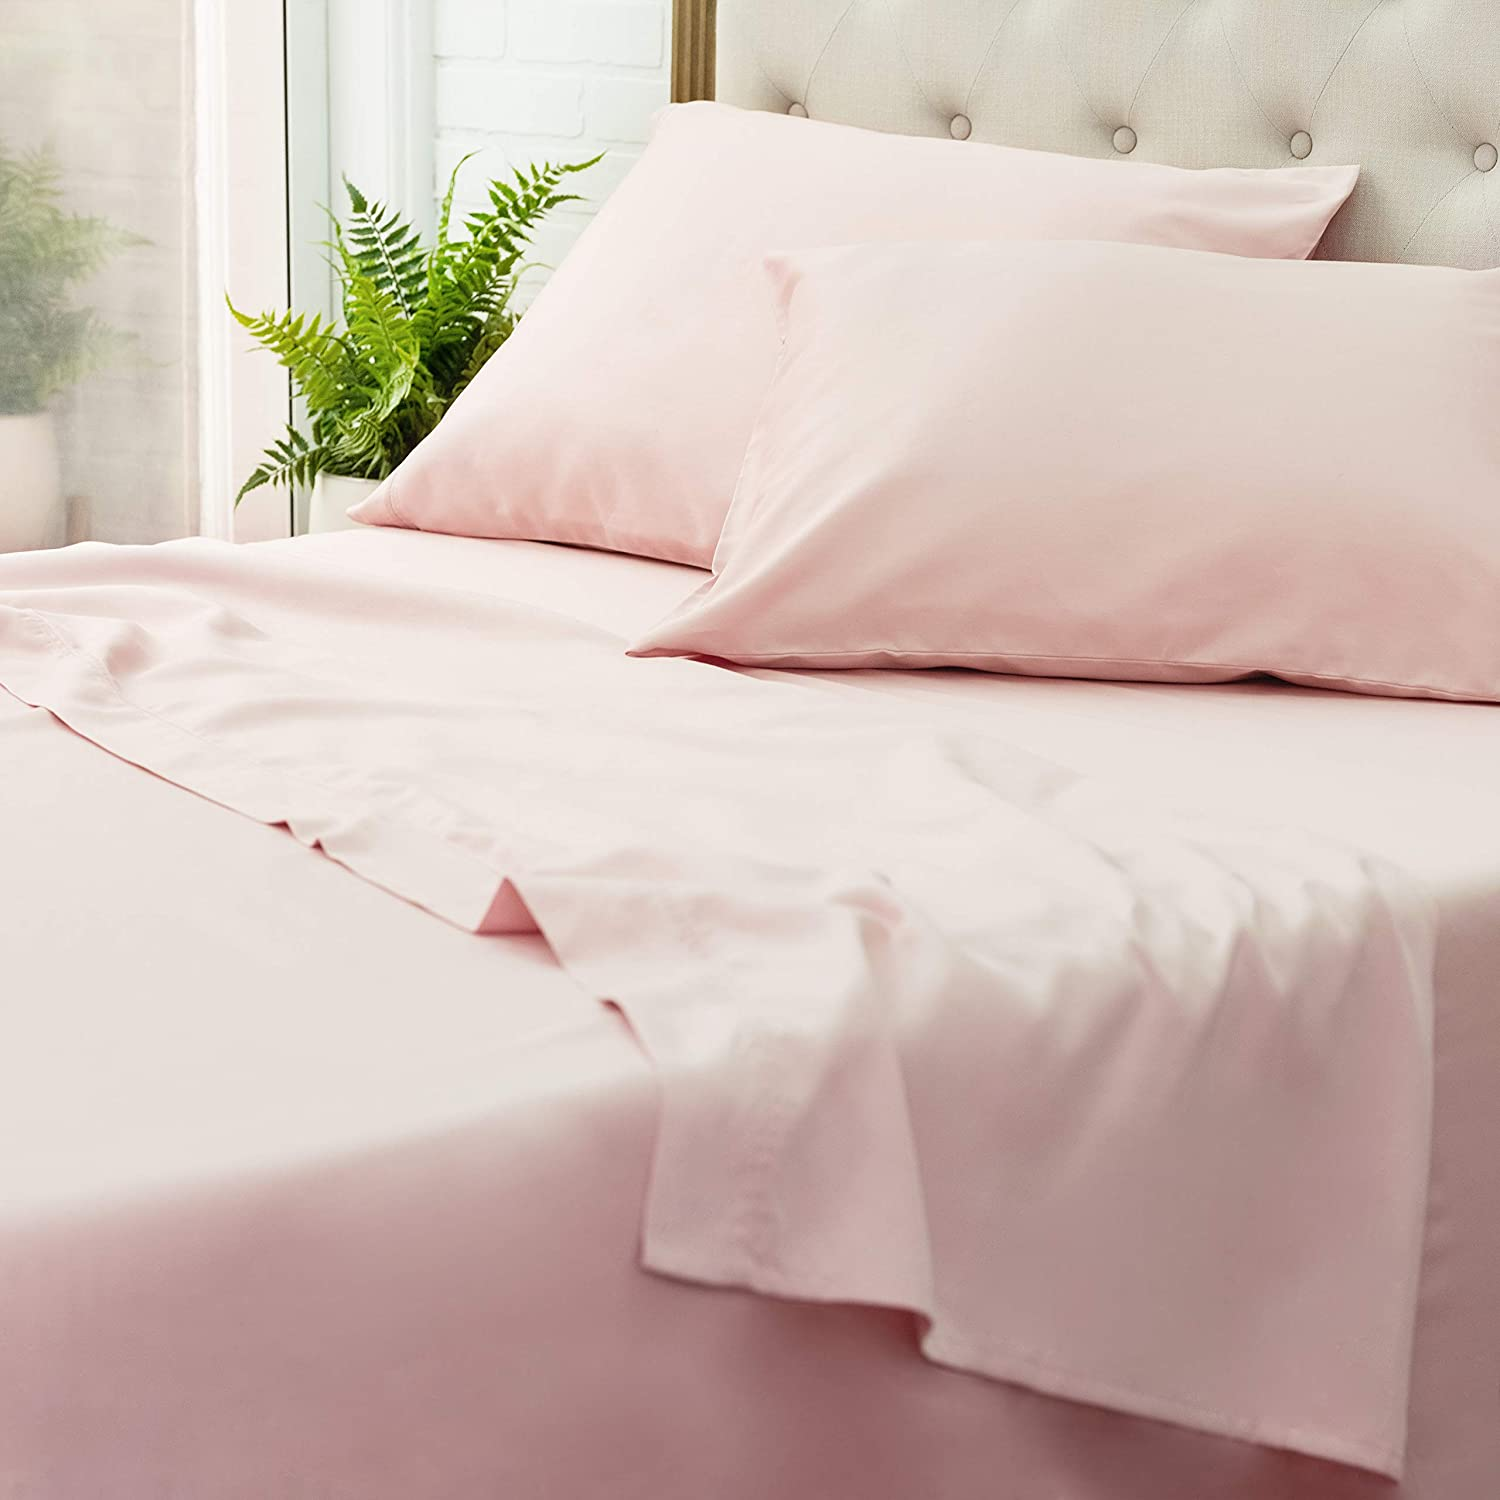 Welhome Twin Size 300 Thread Count 100% Cotton Hygro Sheet Set - 3 Piece - Super Soft Finish - Cooler in Summer & Warmer in Winter - Deep Pocket - Easy fit -Rose